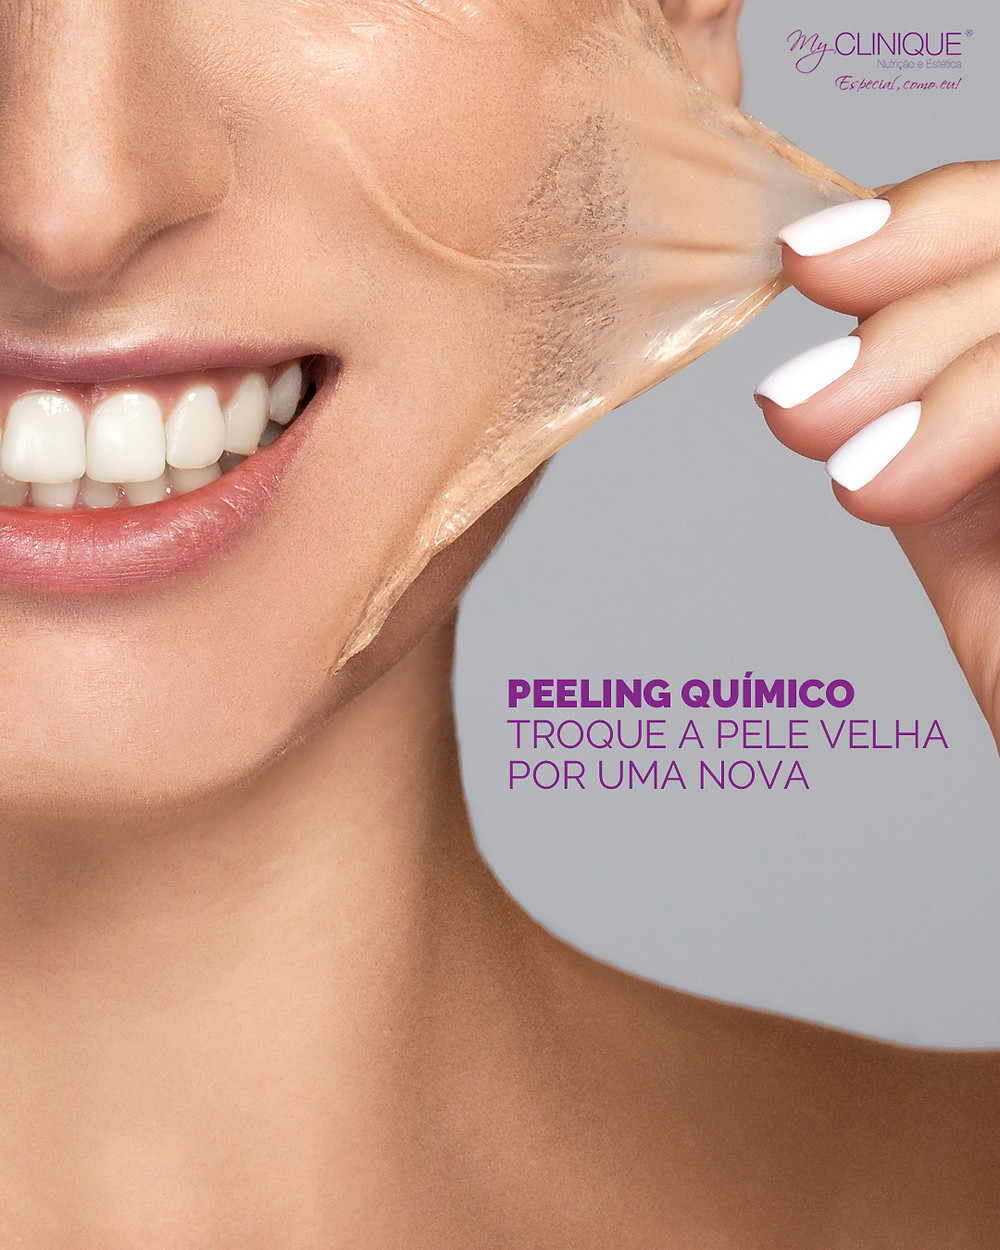 myclinique peeling quimico